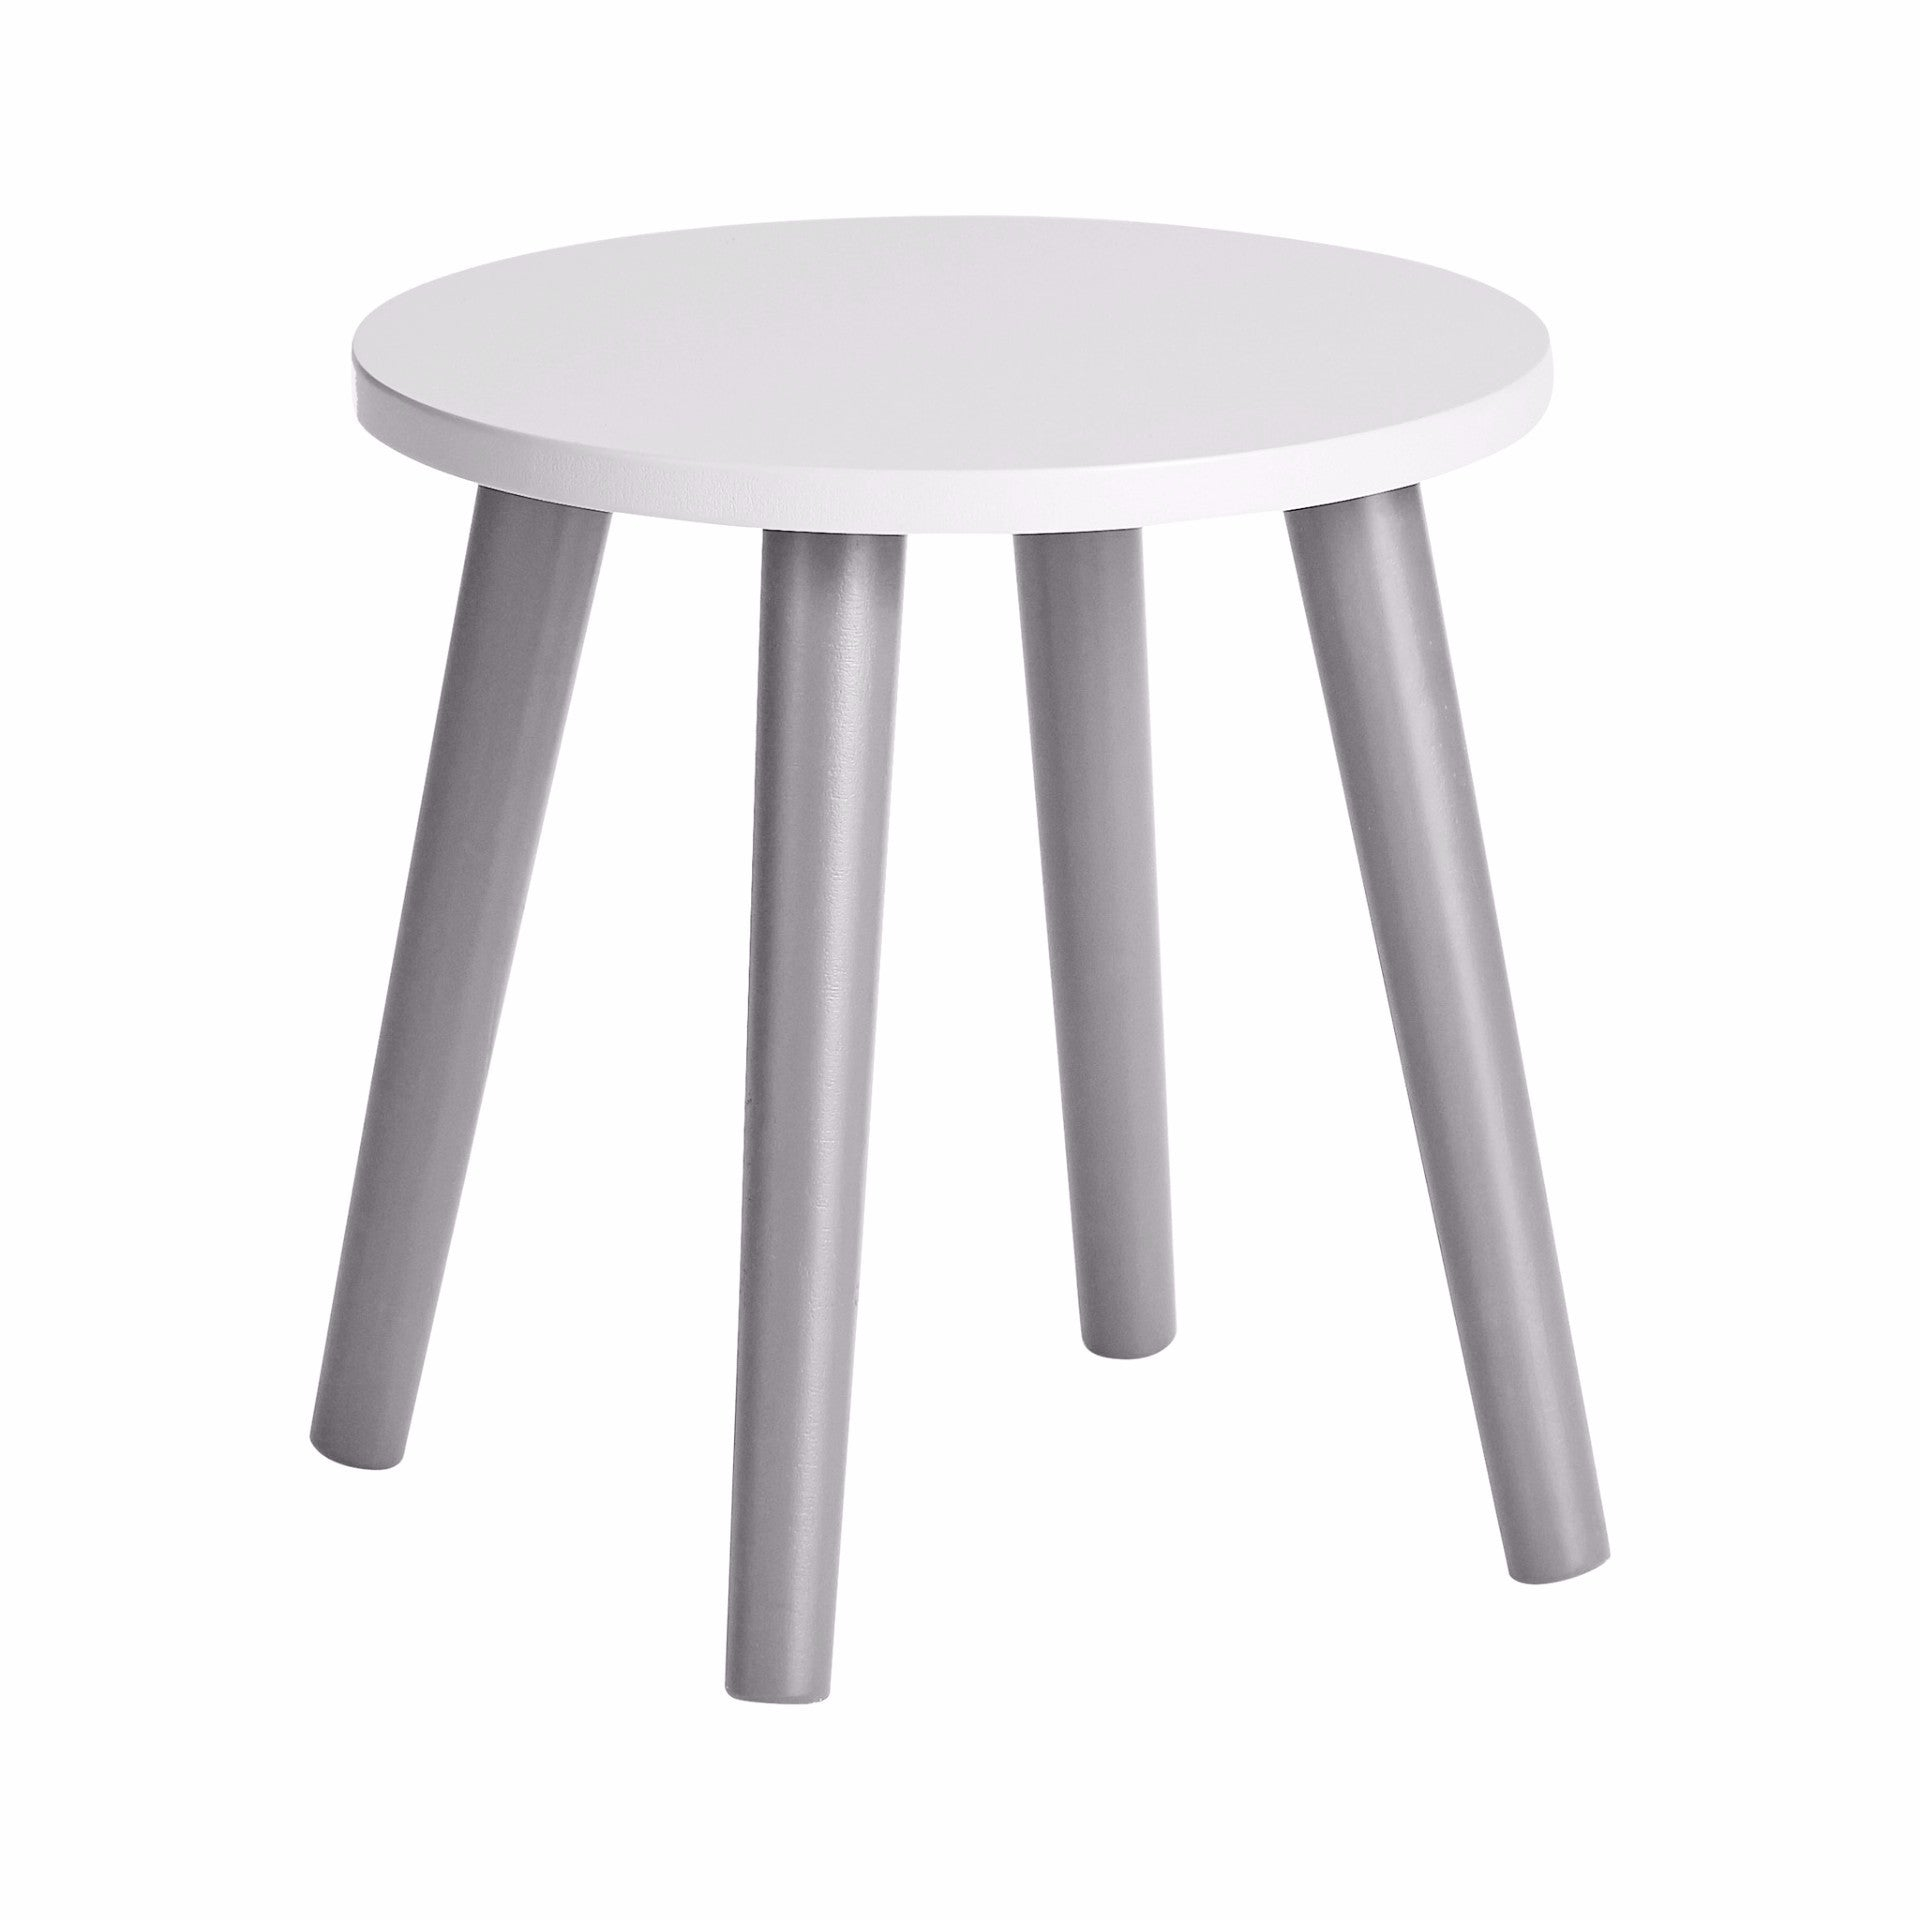 Children\'s Play Table Set - Done by Deer | Urban Avenue